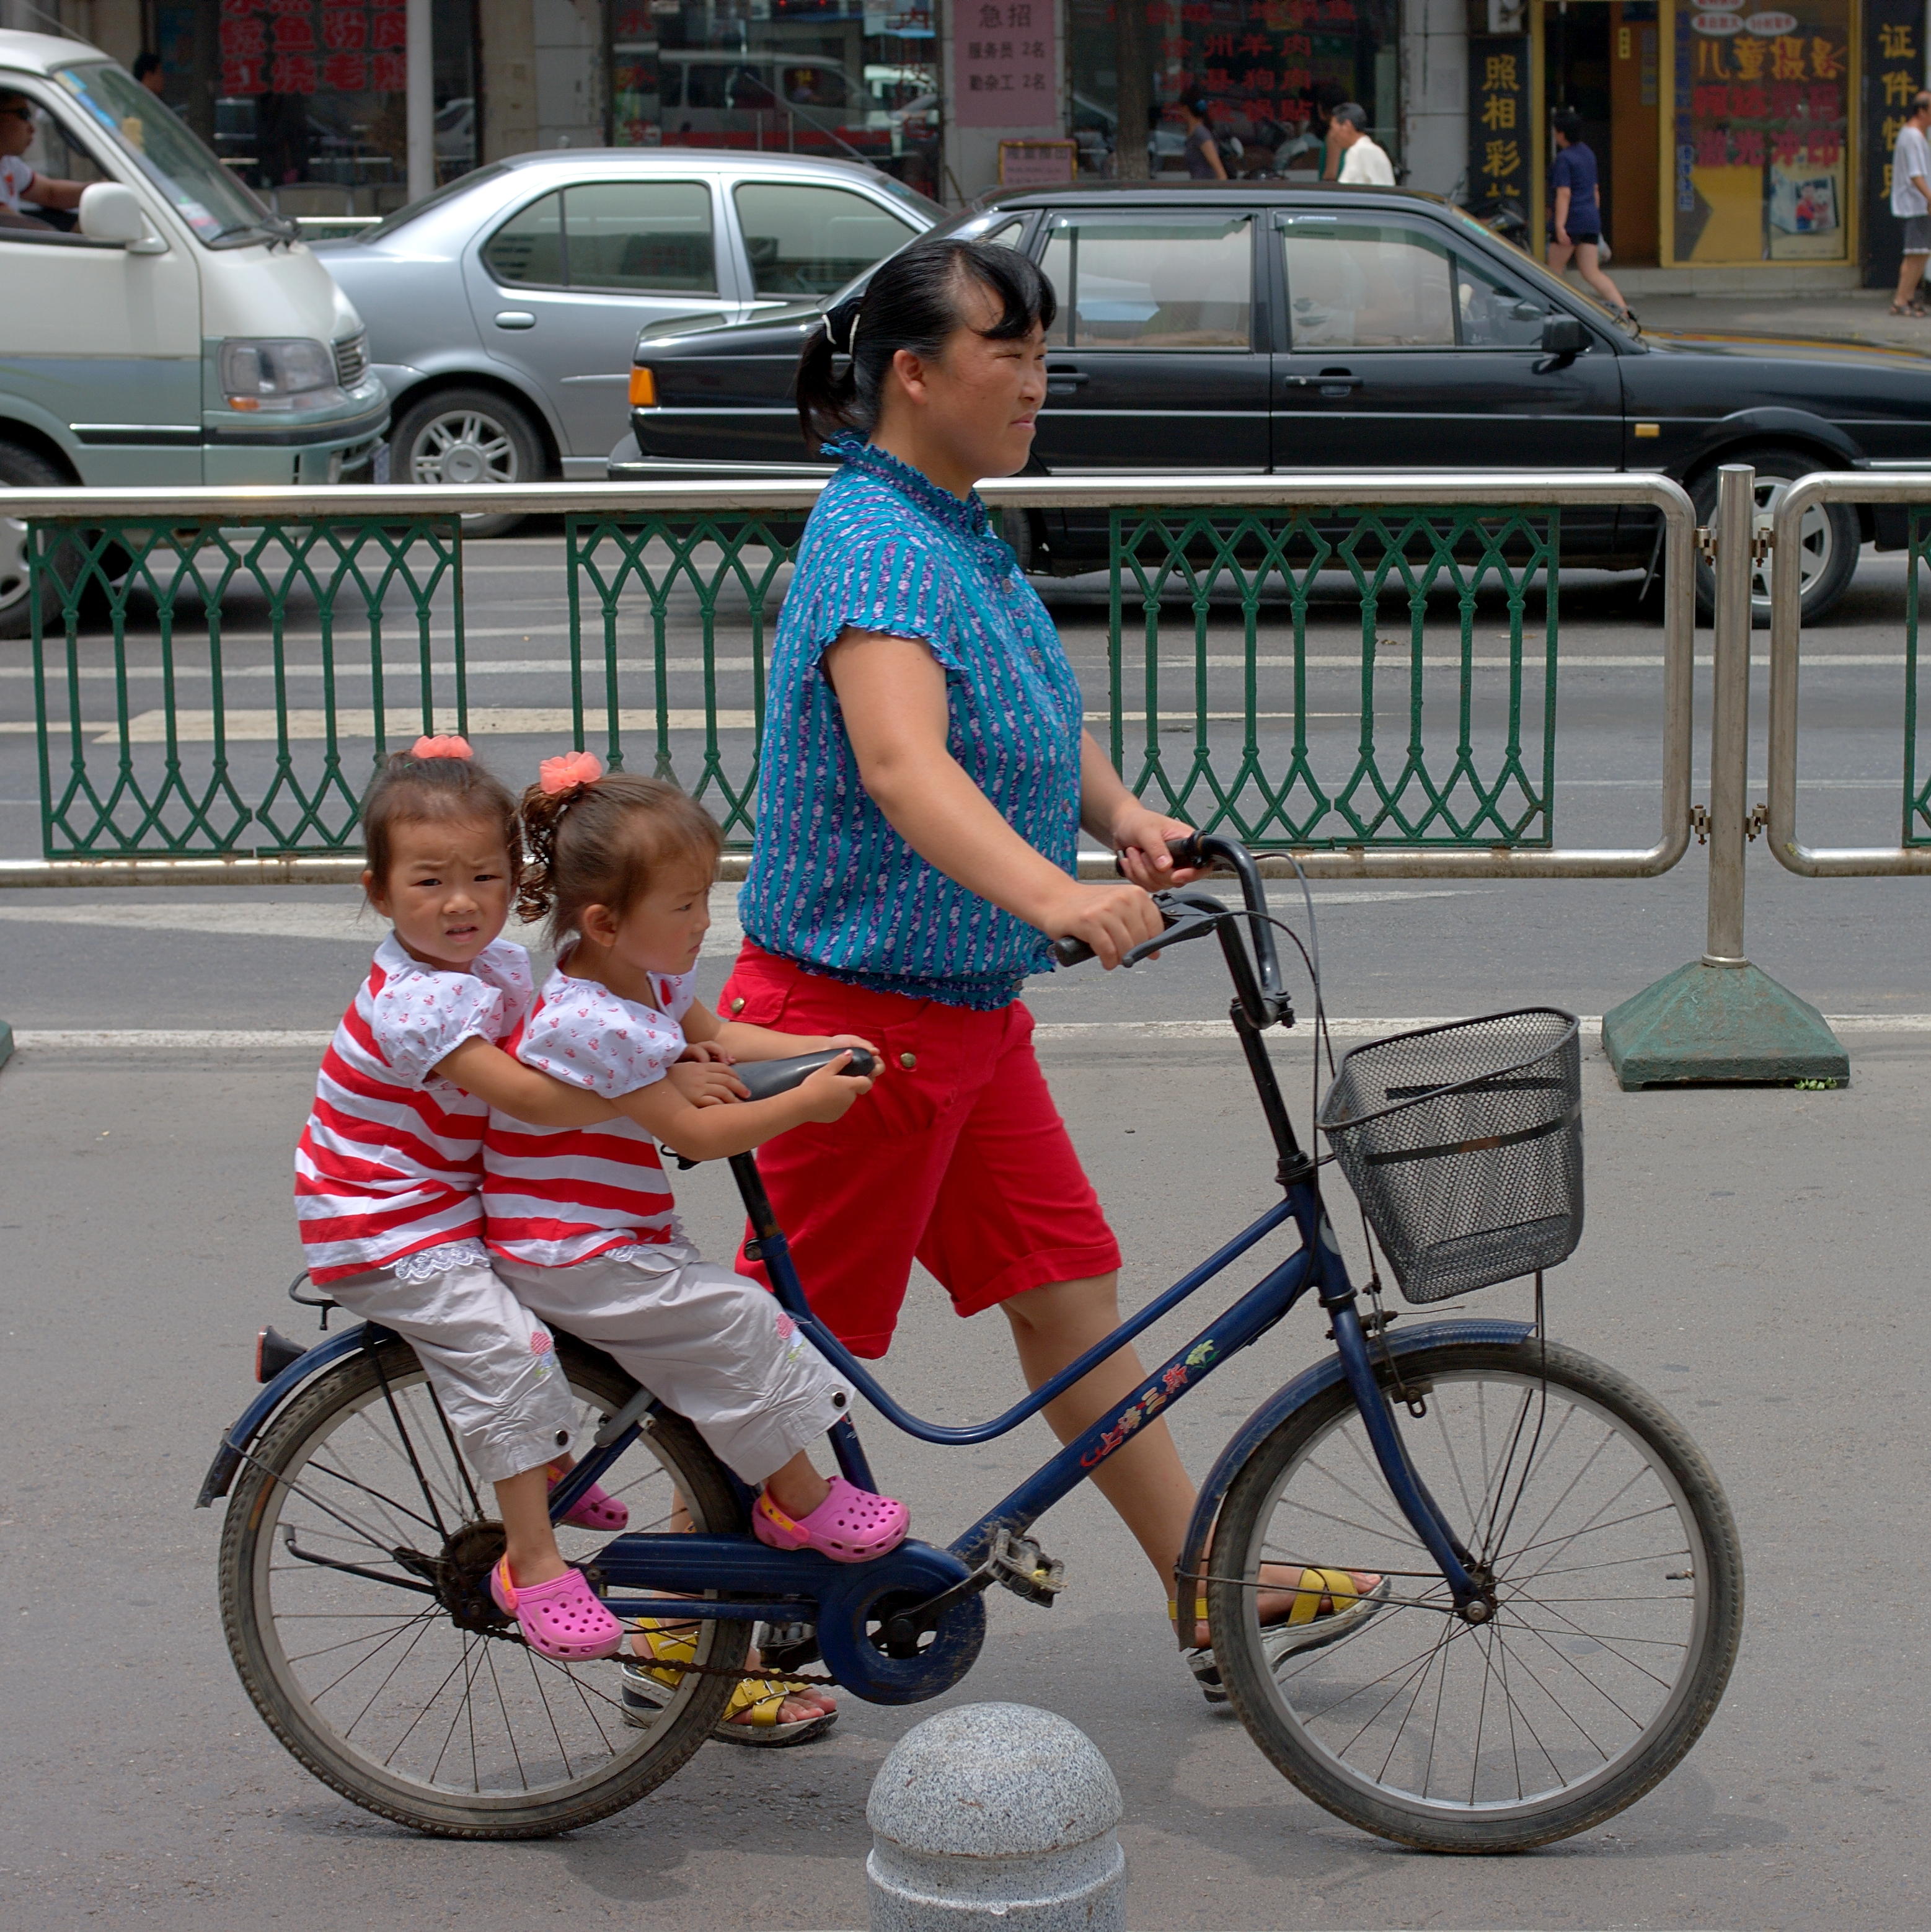 Bike History For Kids File Woman pushing a bike with